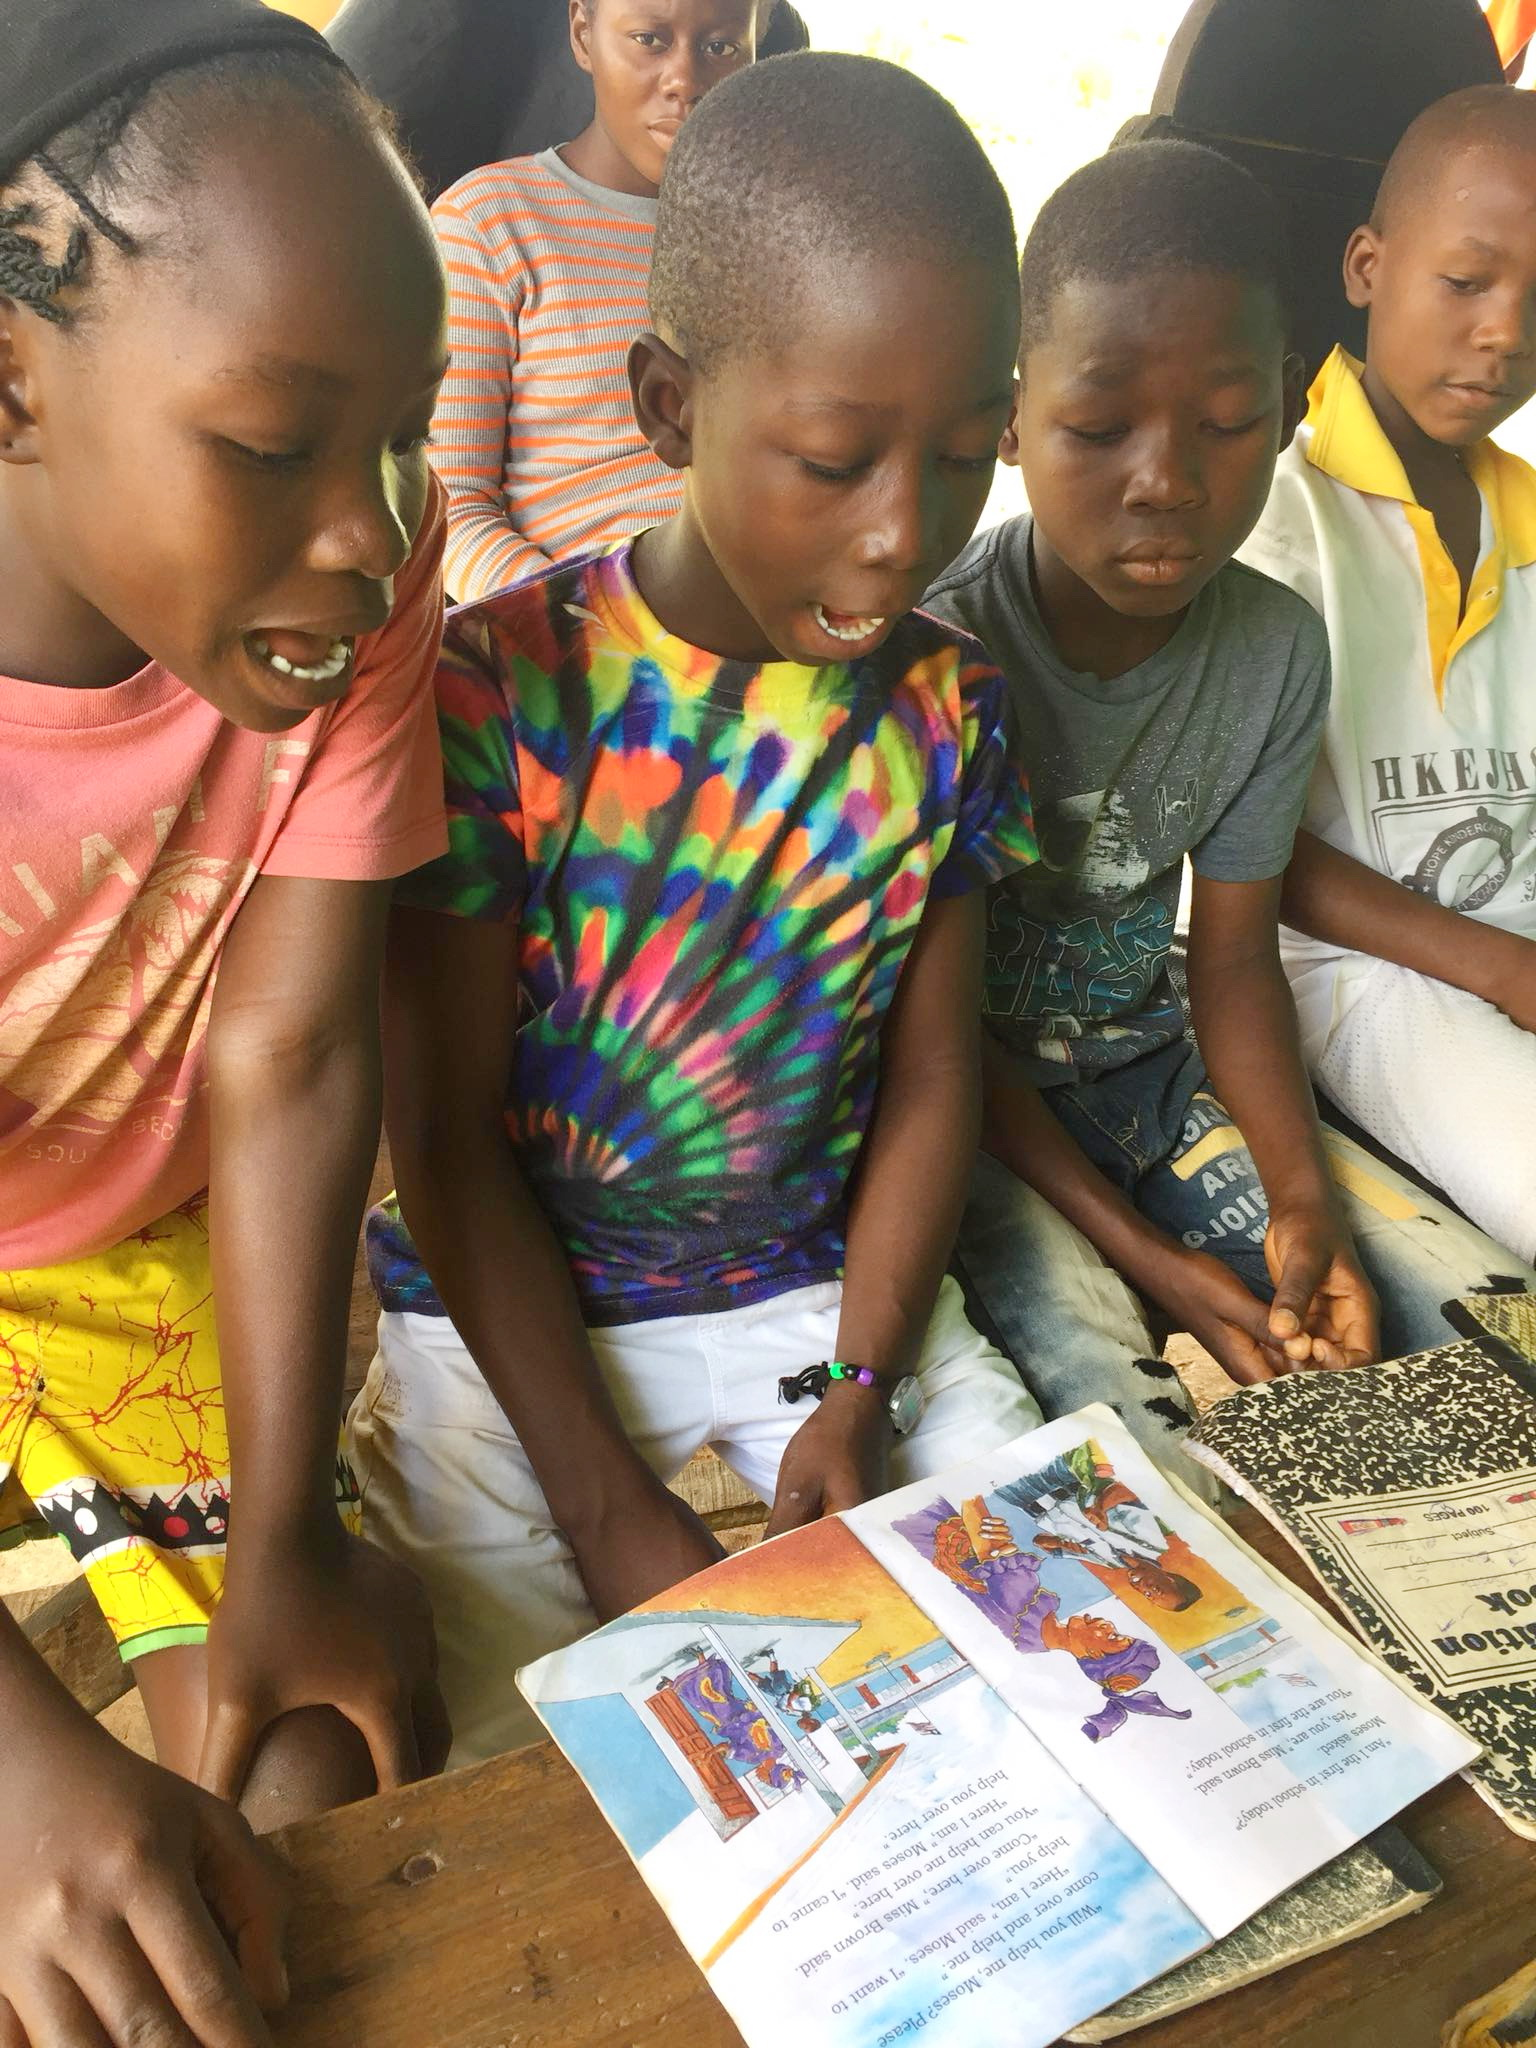 The children love to read.  Hopefully we can get more books for both our homes and schools.    One of our goals is to ship good books to Liberia in a container.  Schools and individuals would donate their books.